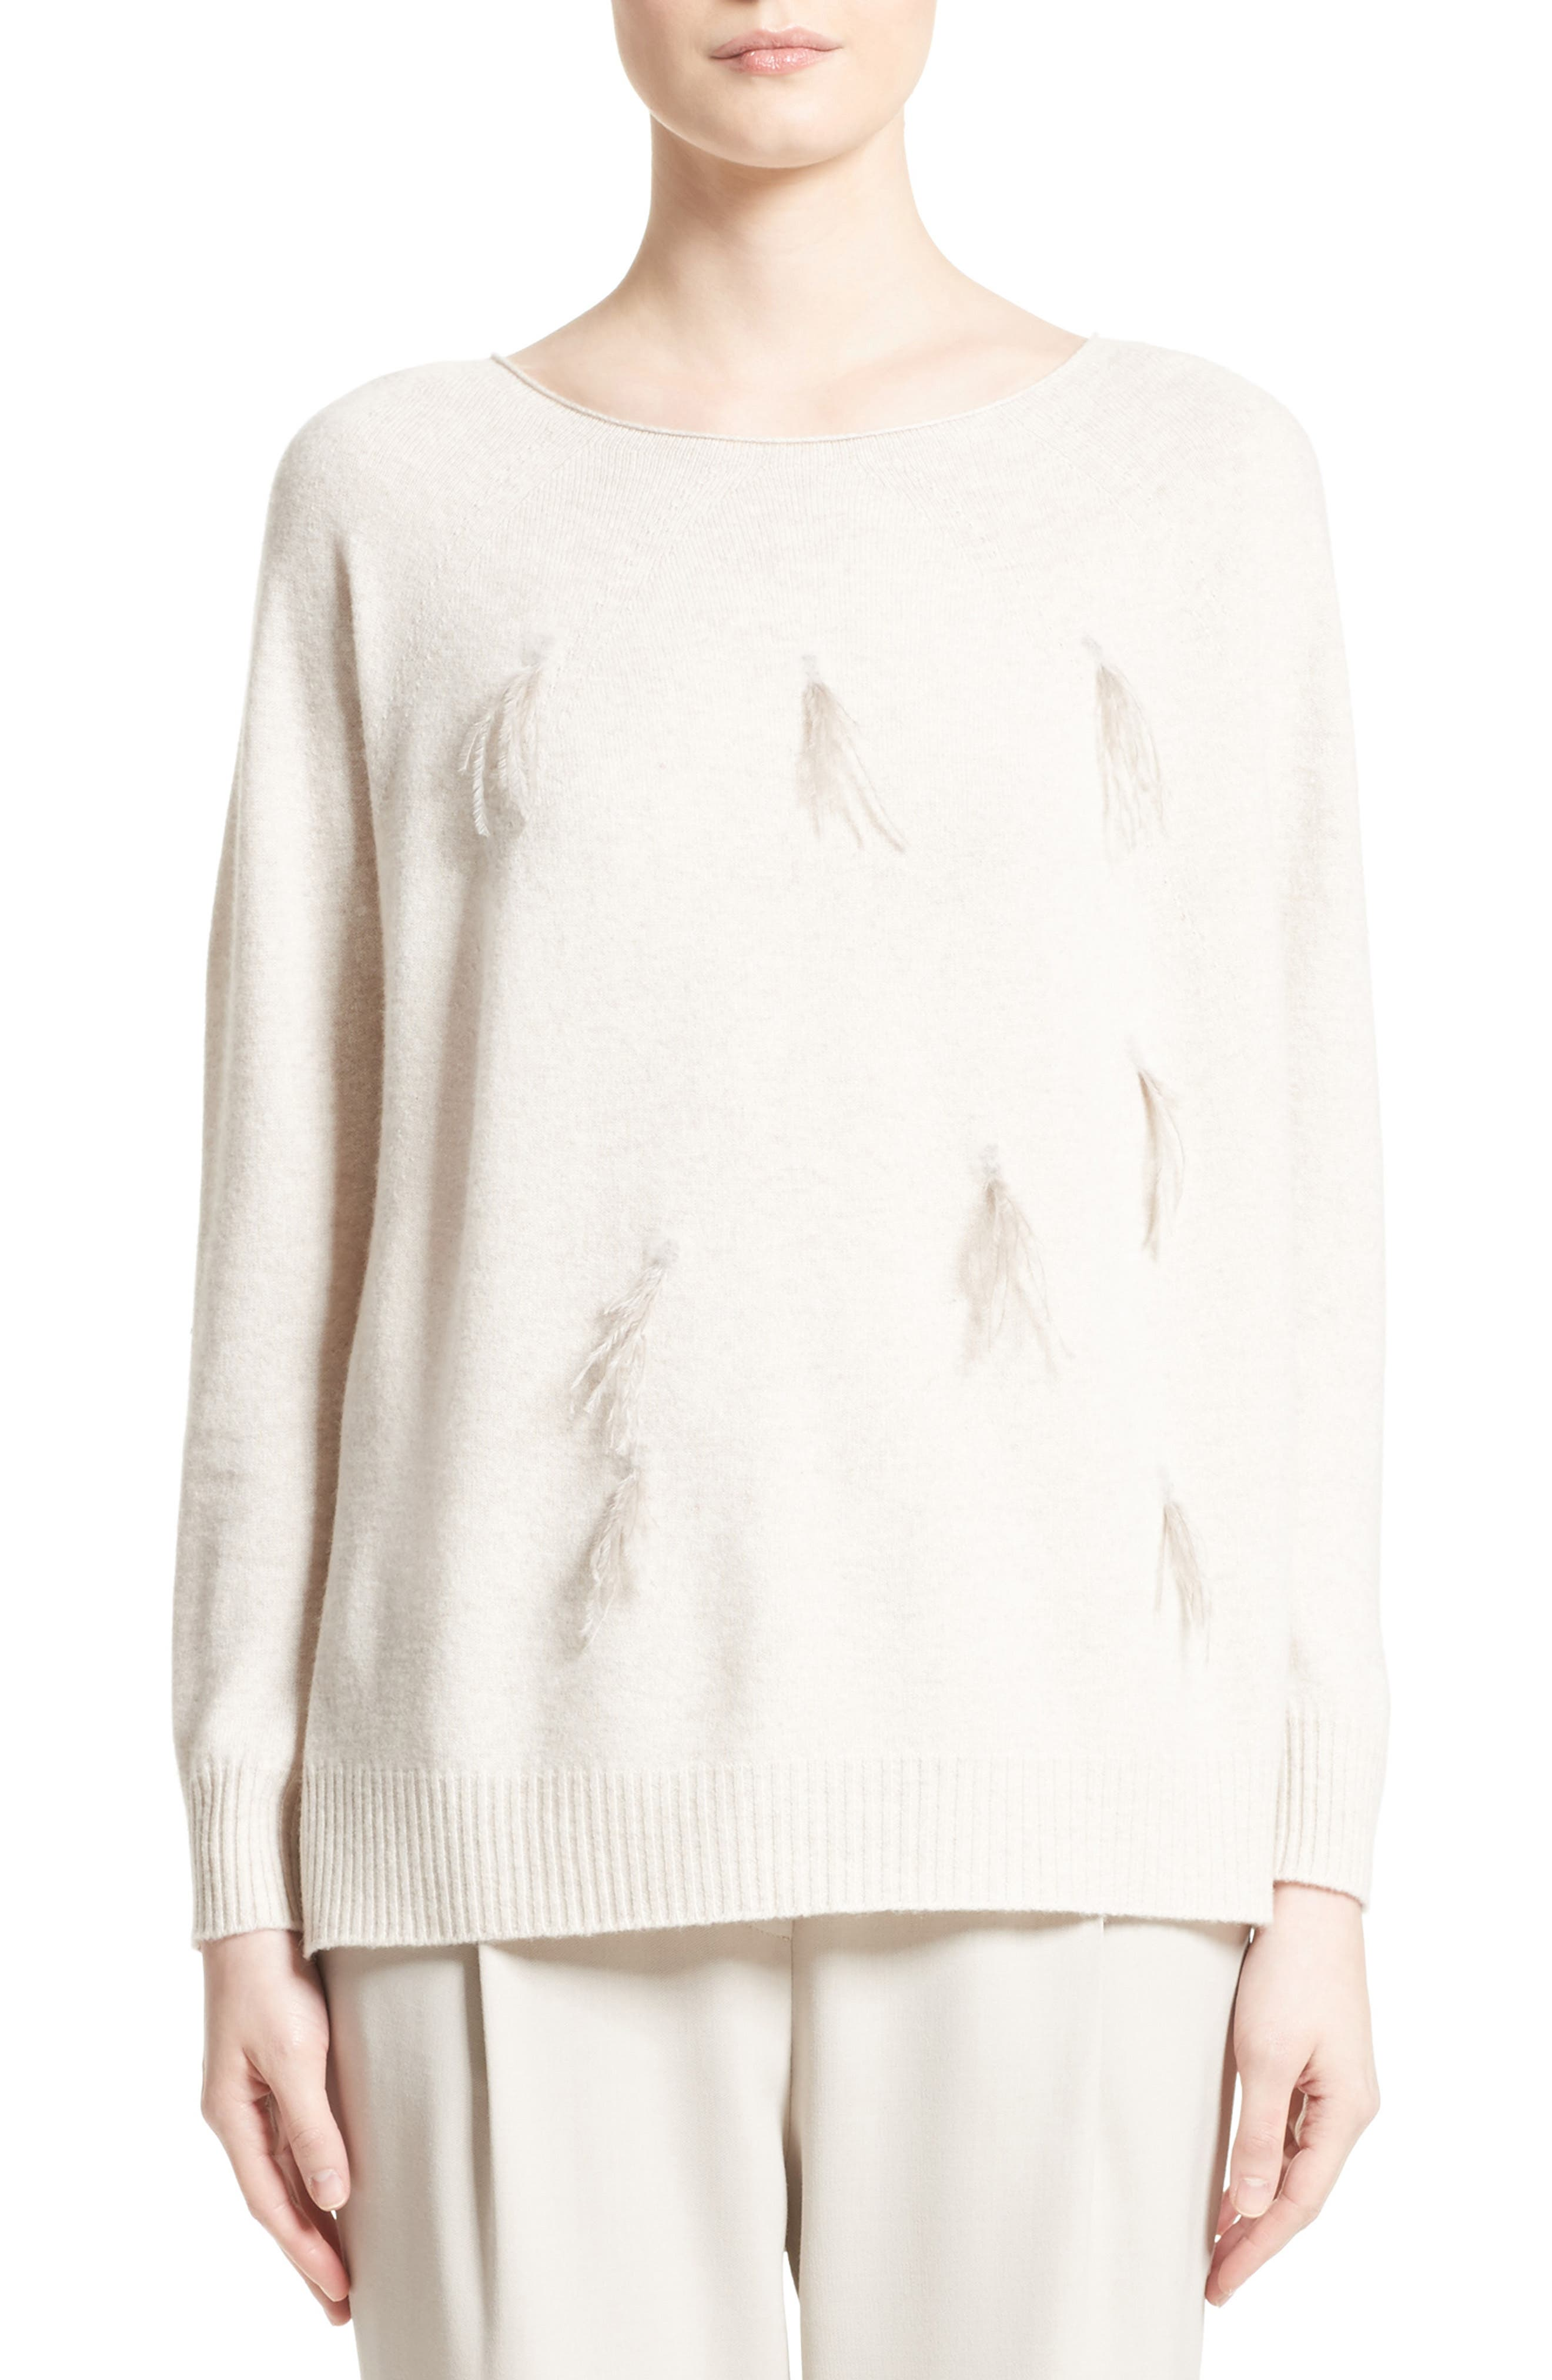 Alternate Image 1 Selected - Fabiana Filippi Needle Punch Ostrich Feather Trim Sweater